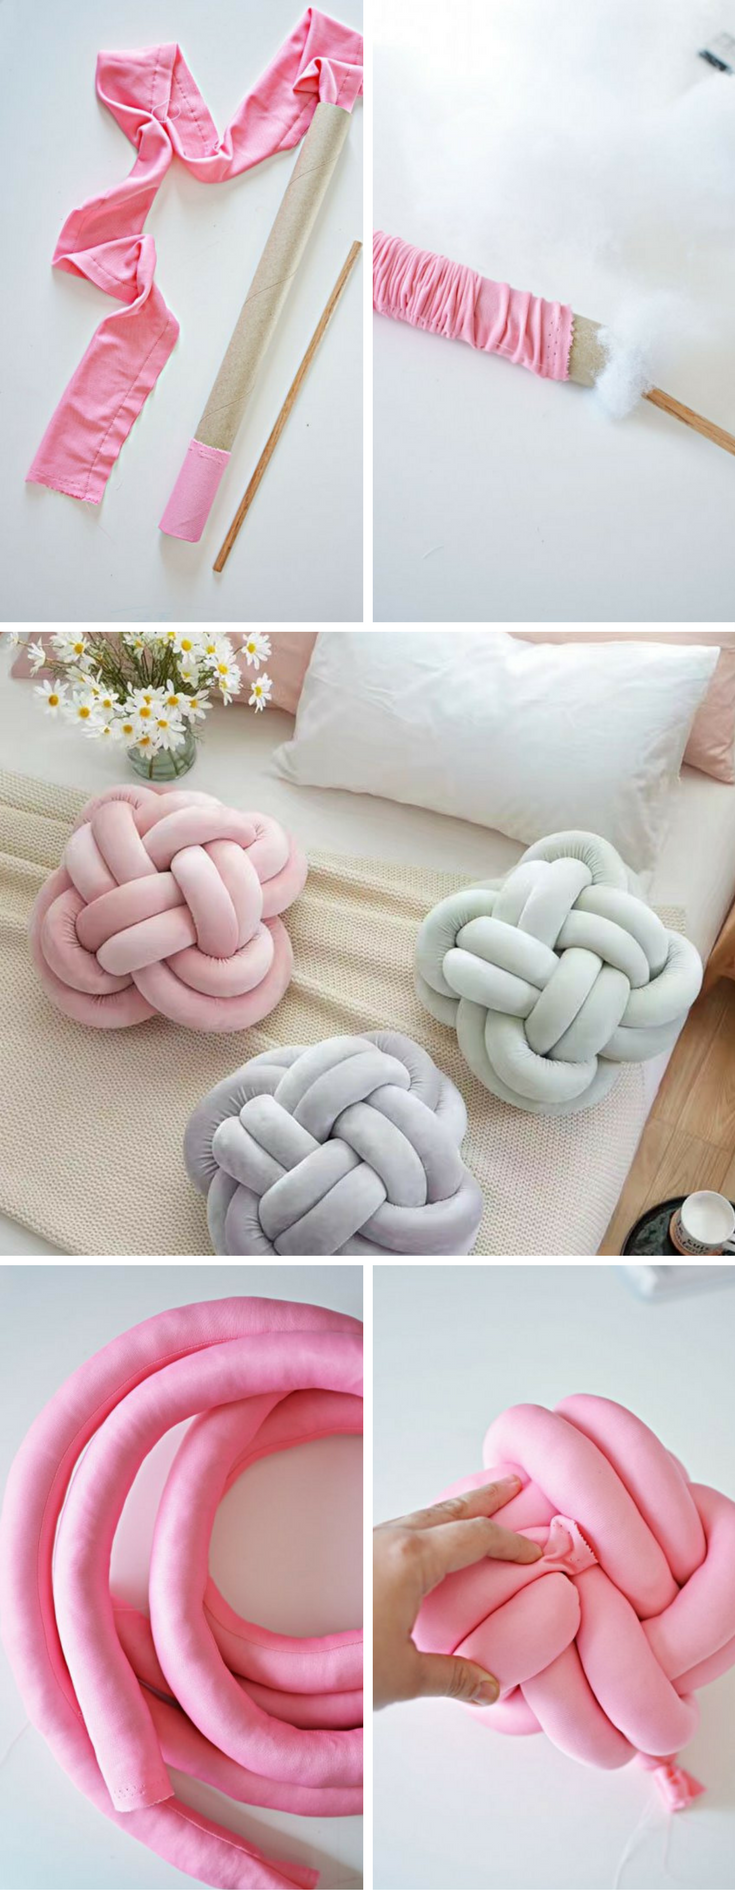 Must Try This DIY Knot Pillow It is Effortless And Costs Almost